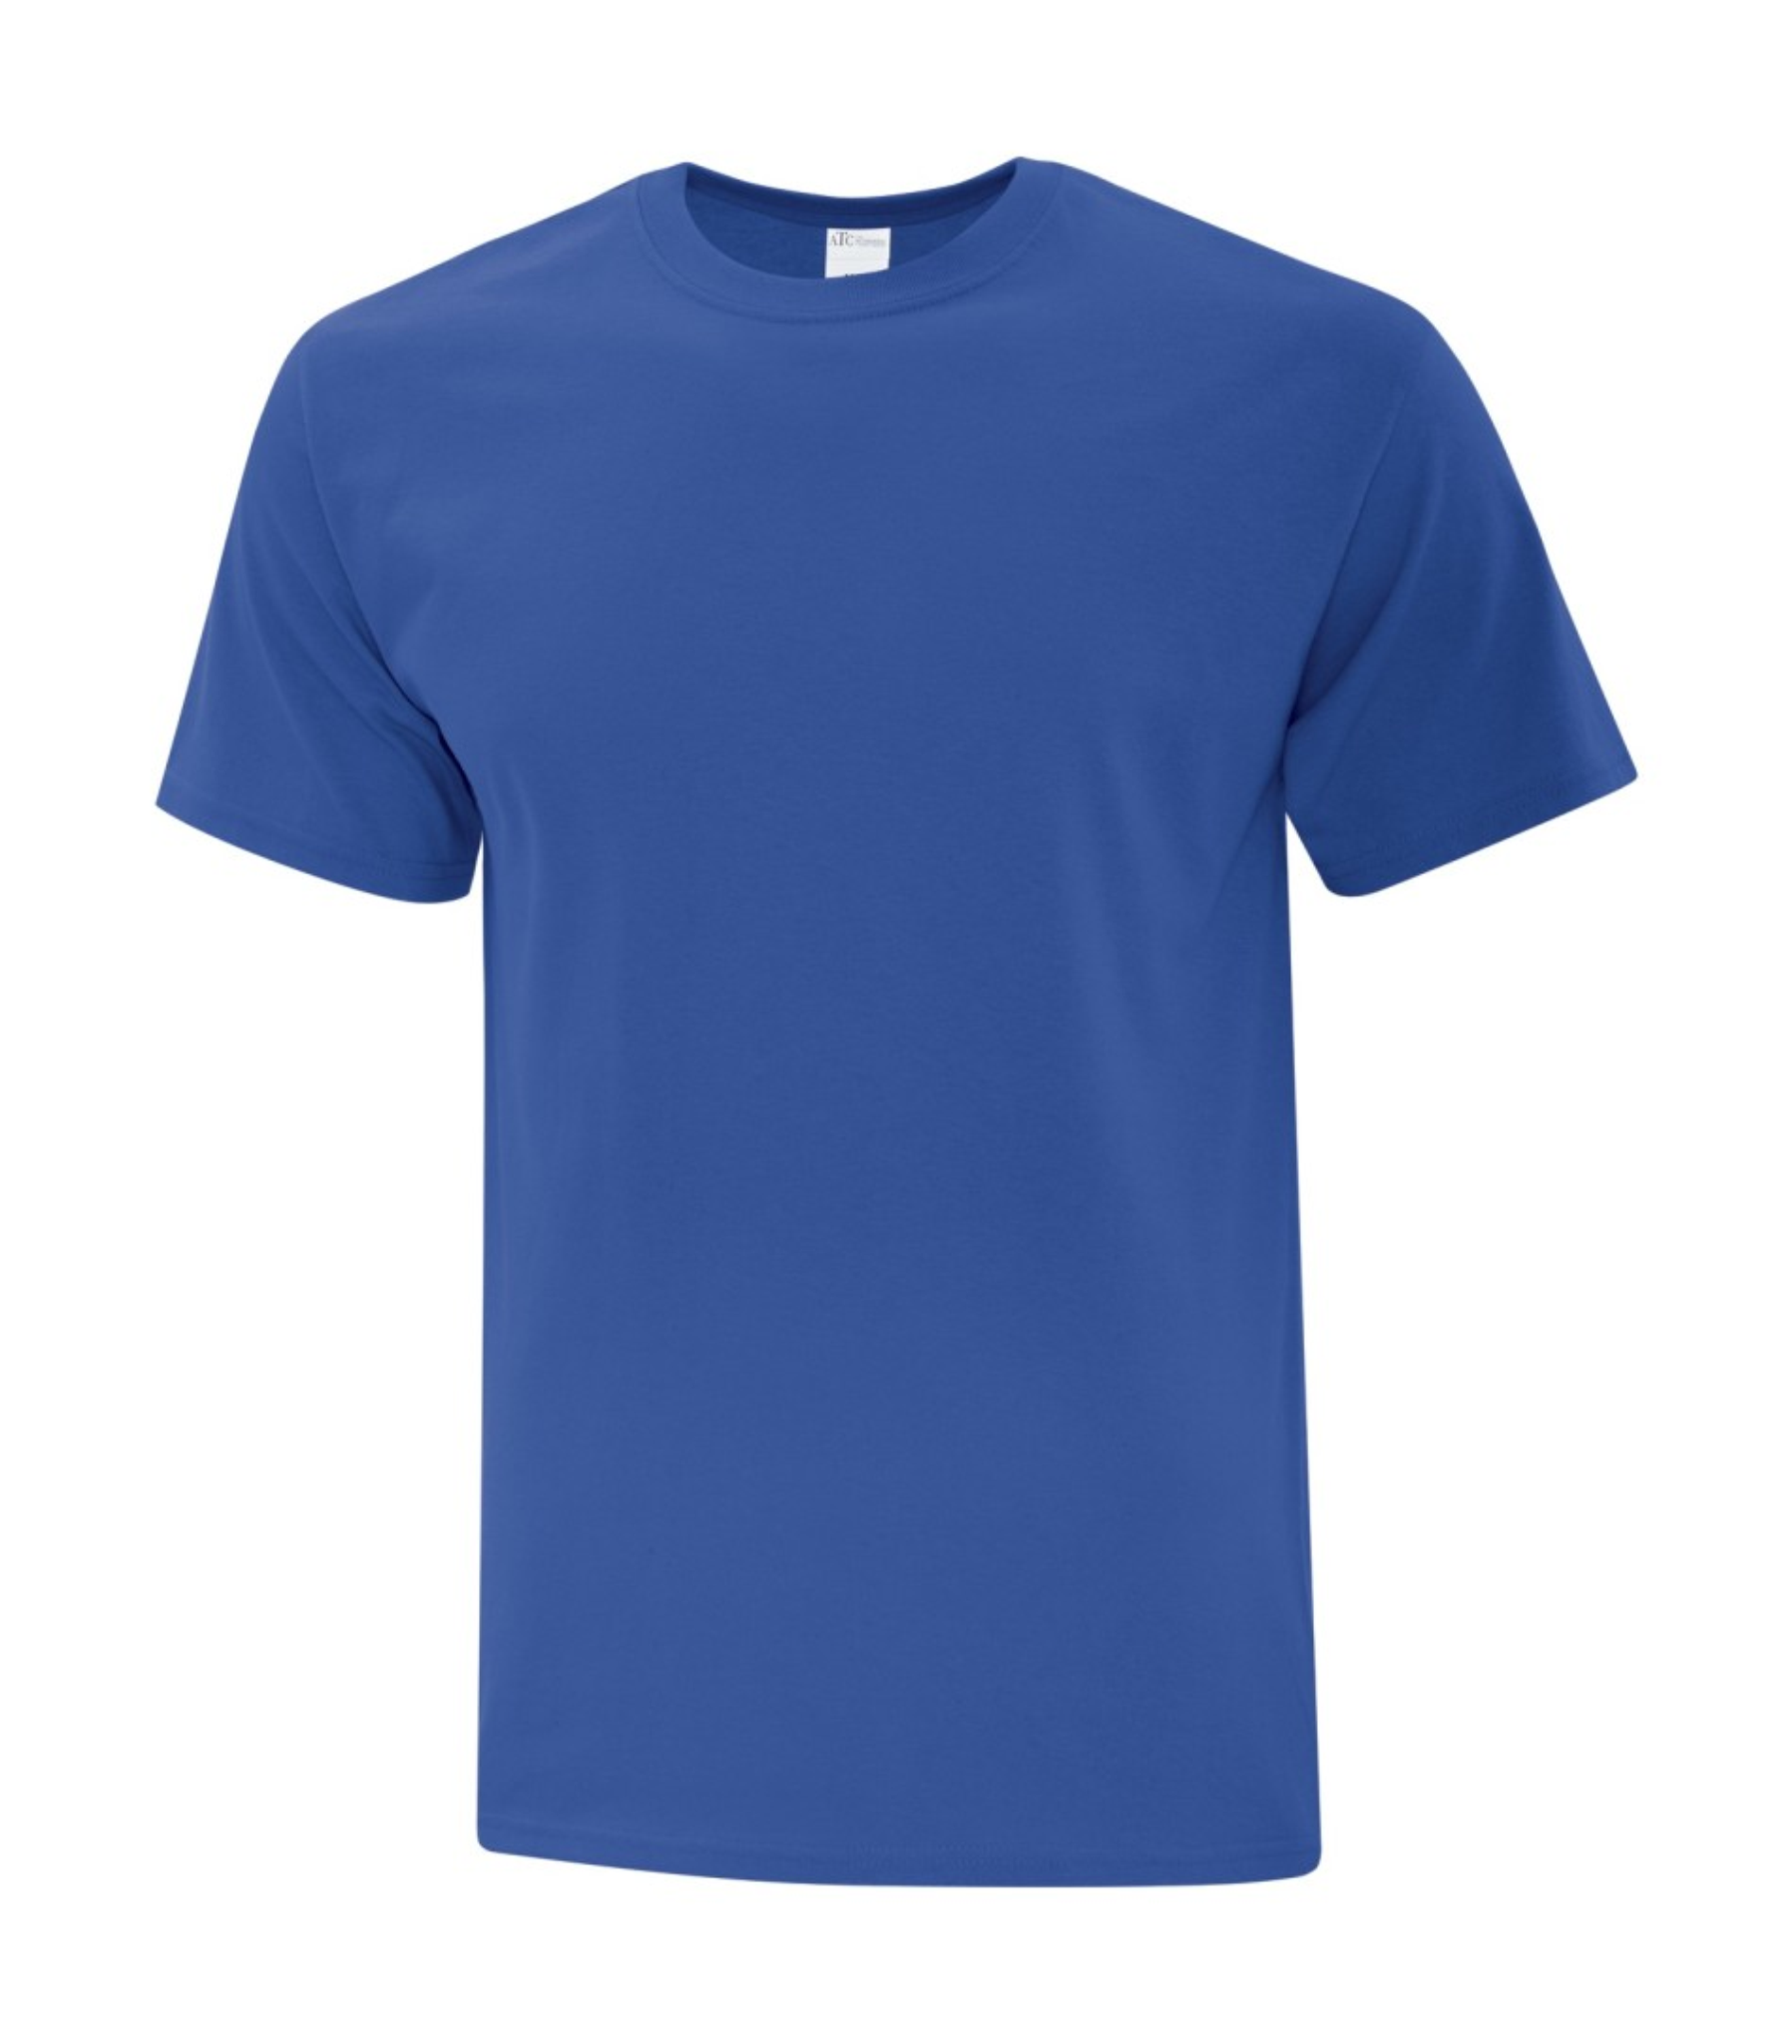 Mens T-Shirt - Cotton - ATC 1000